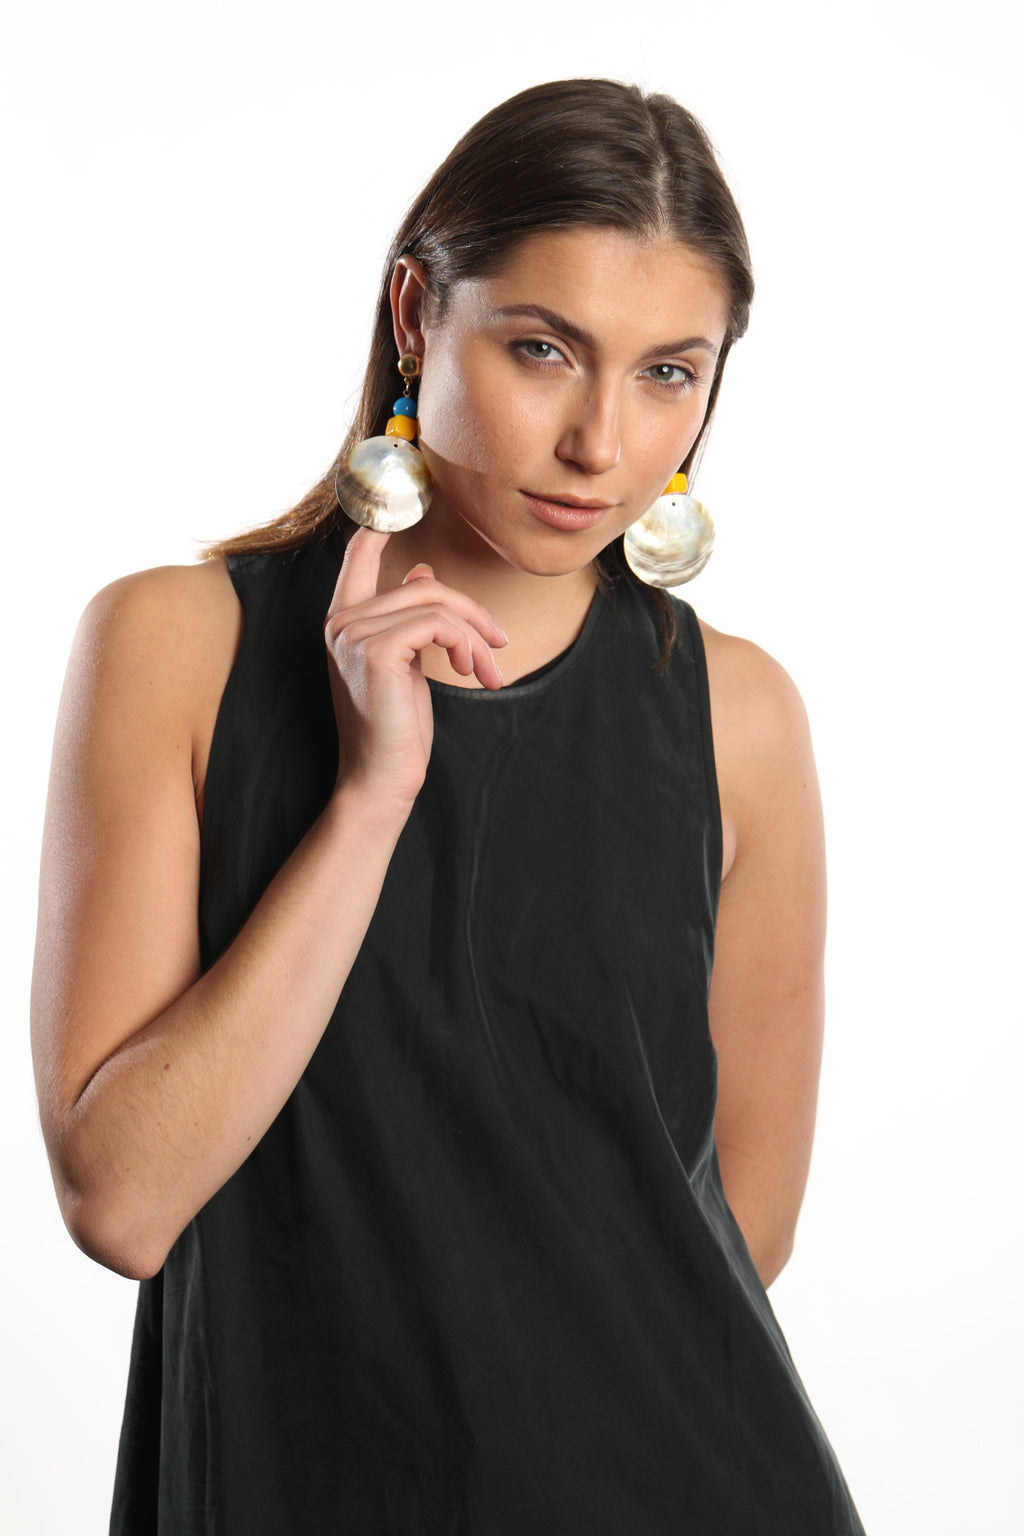 Malibu Boho Statement Earrings - De Bawa Inc.